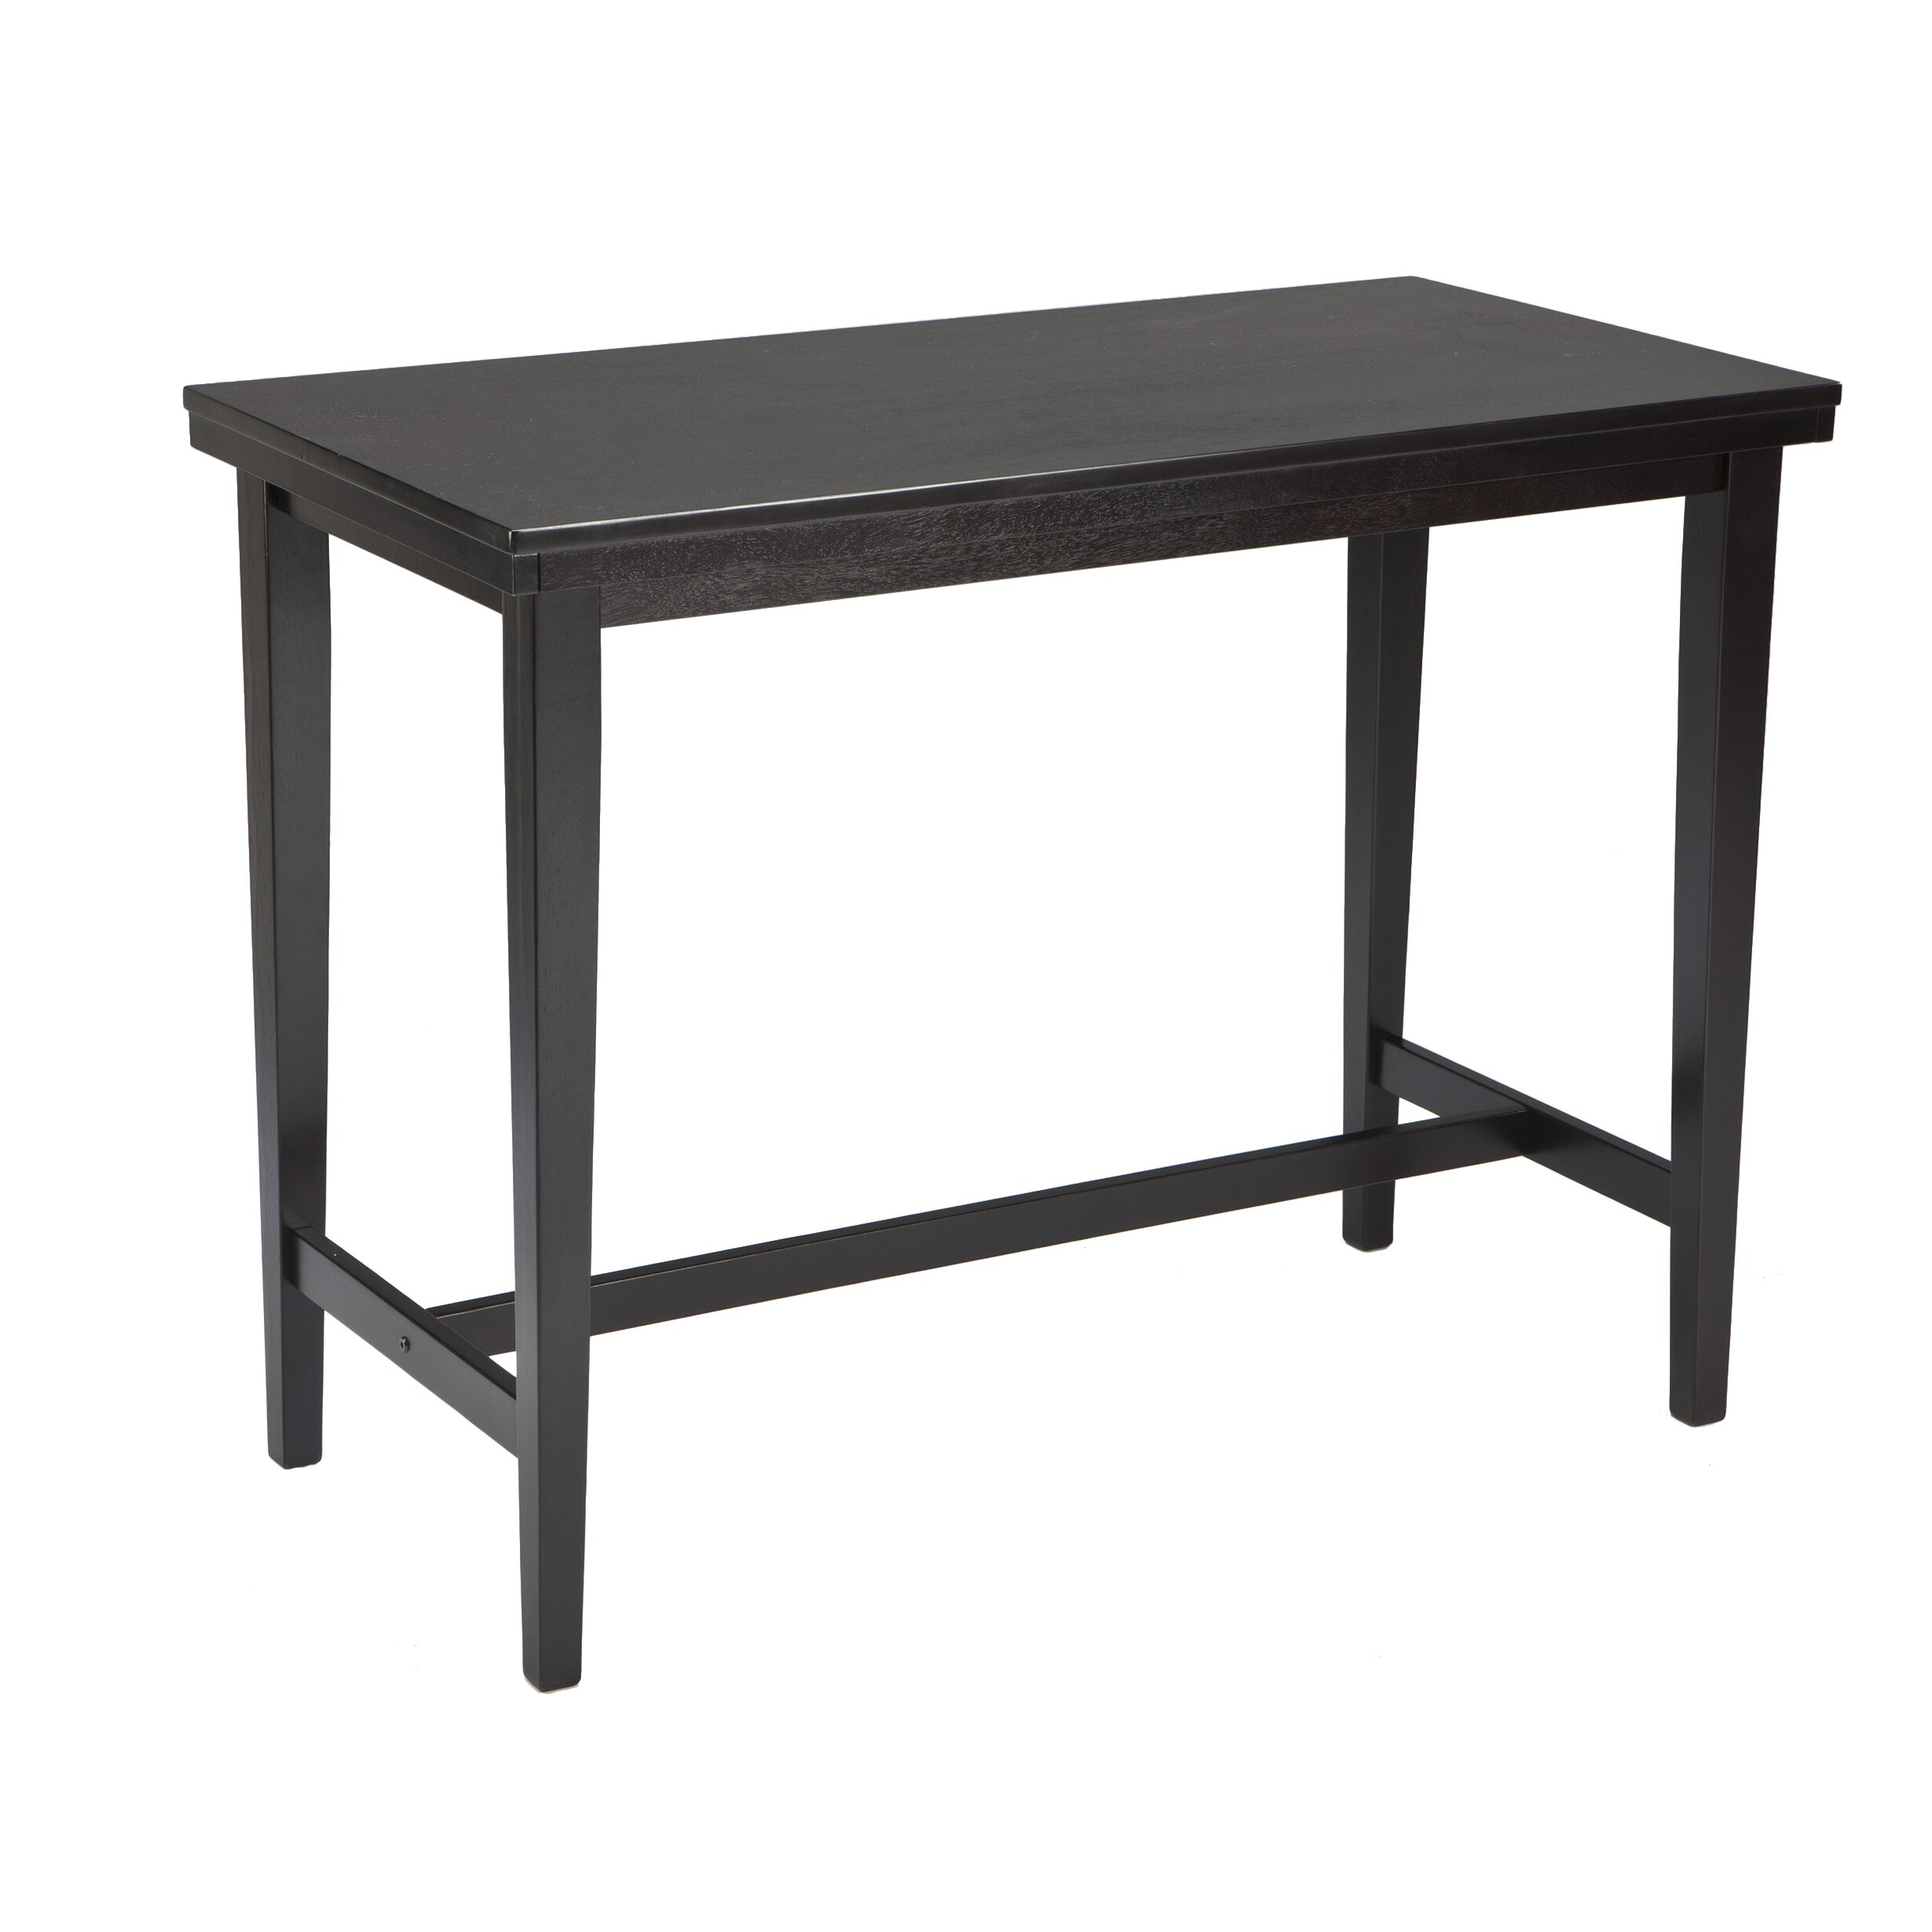 Signature design by ashley kimonte counter height dining table reviews wayfair Counter height bench